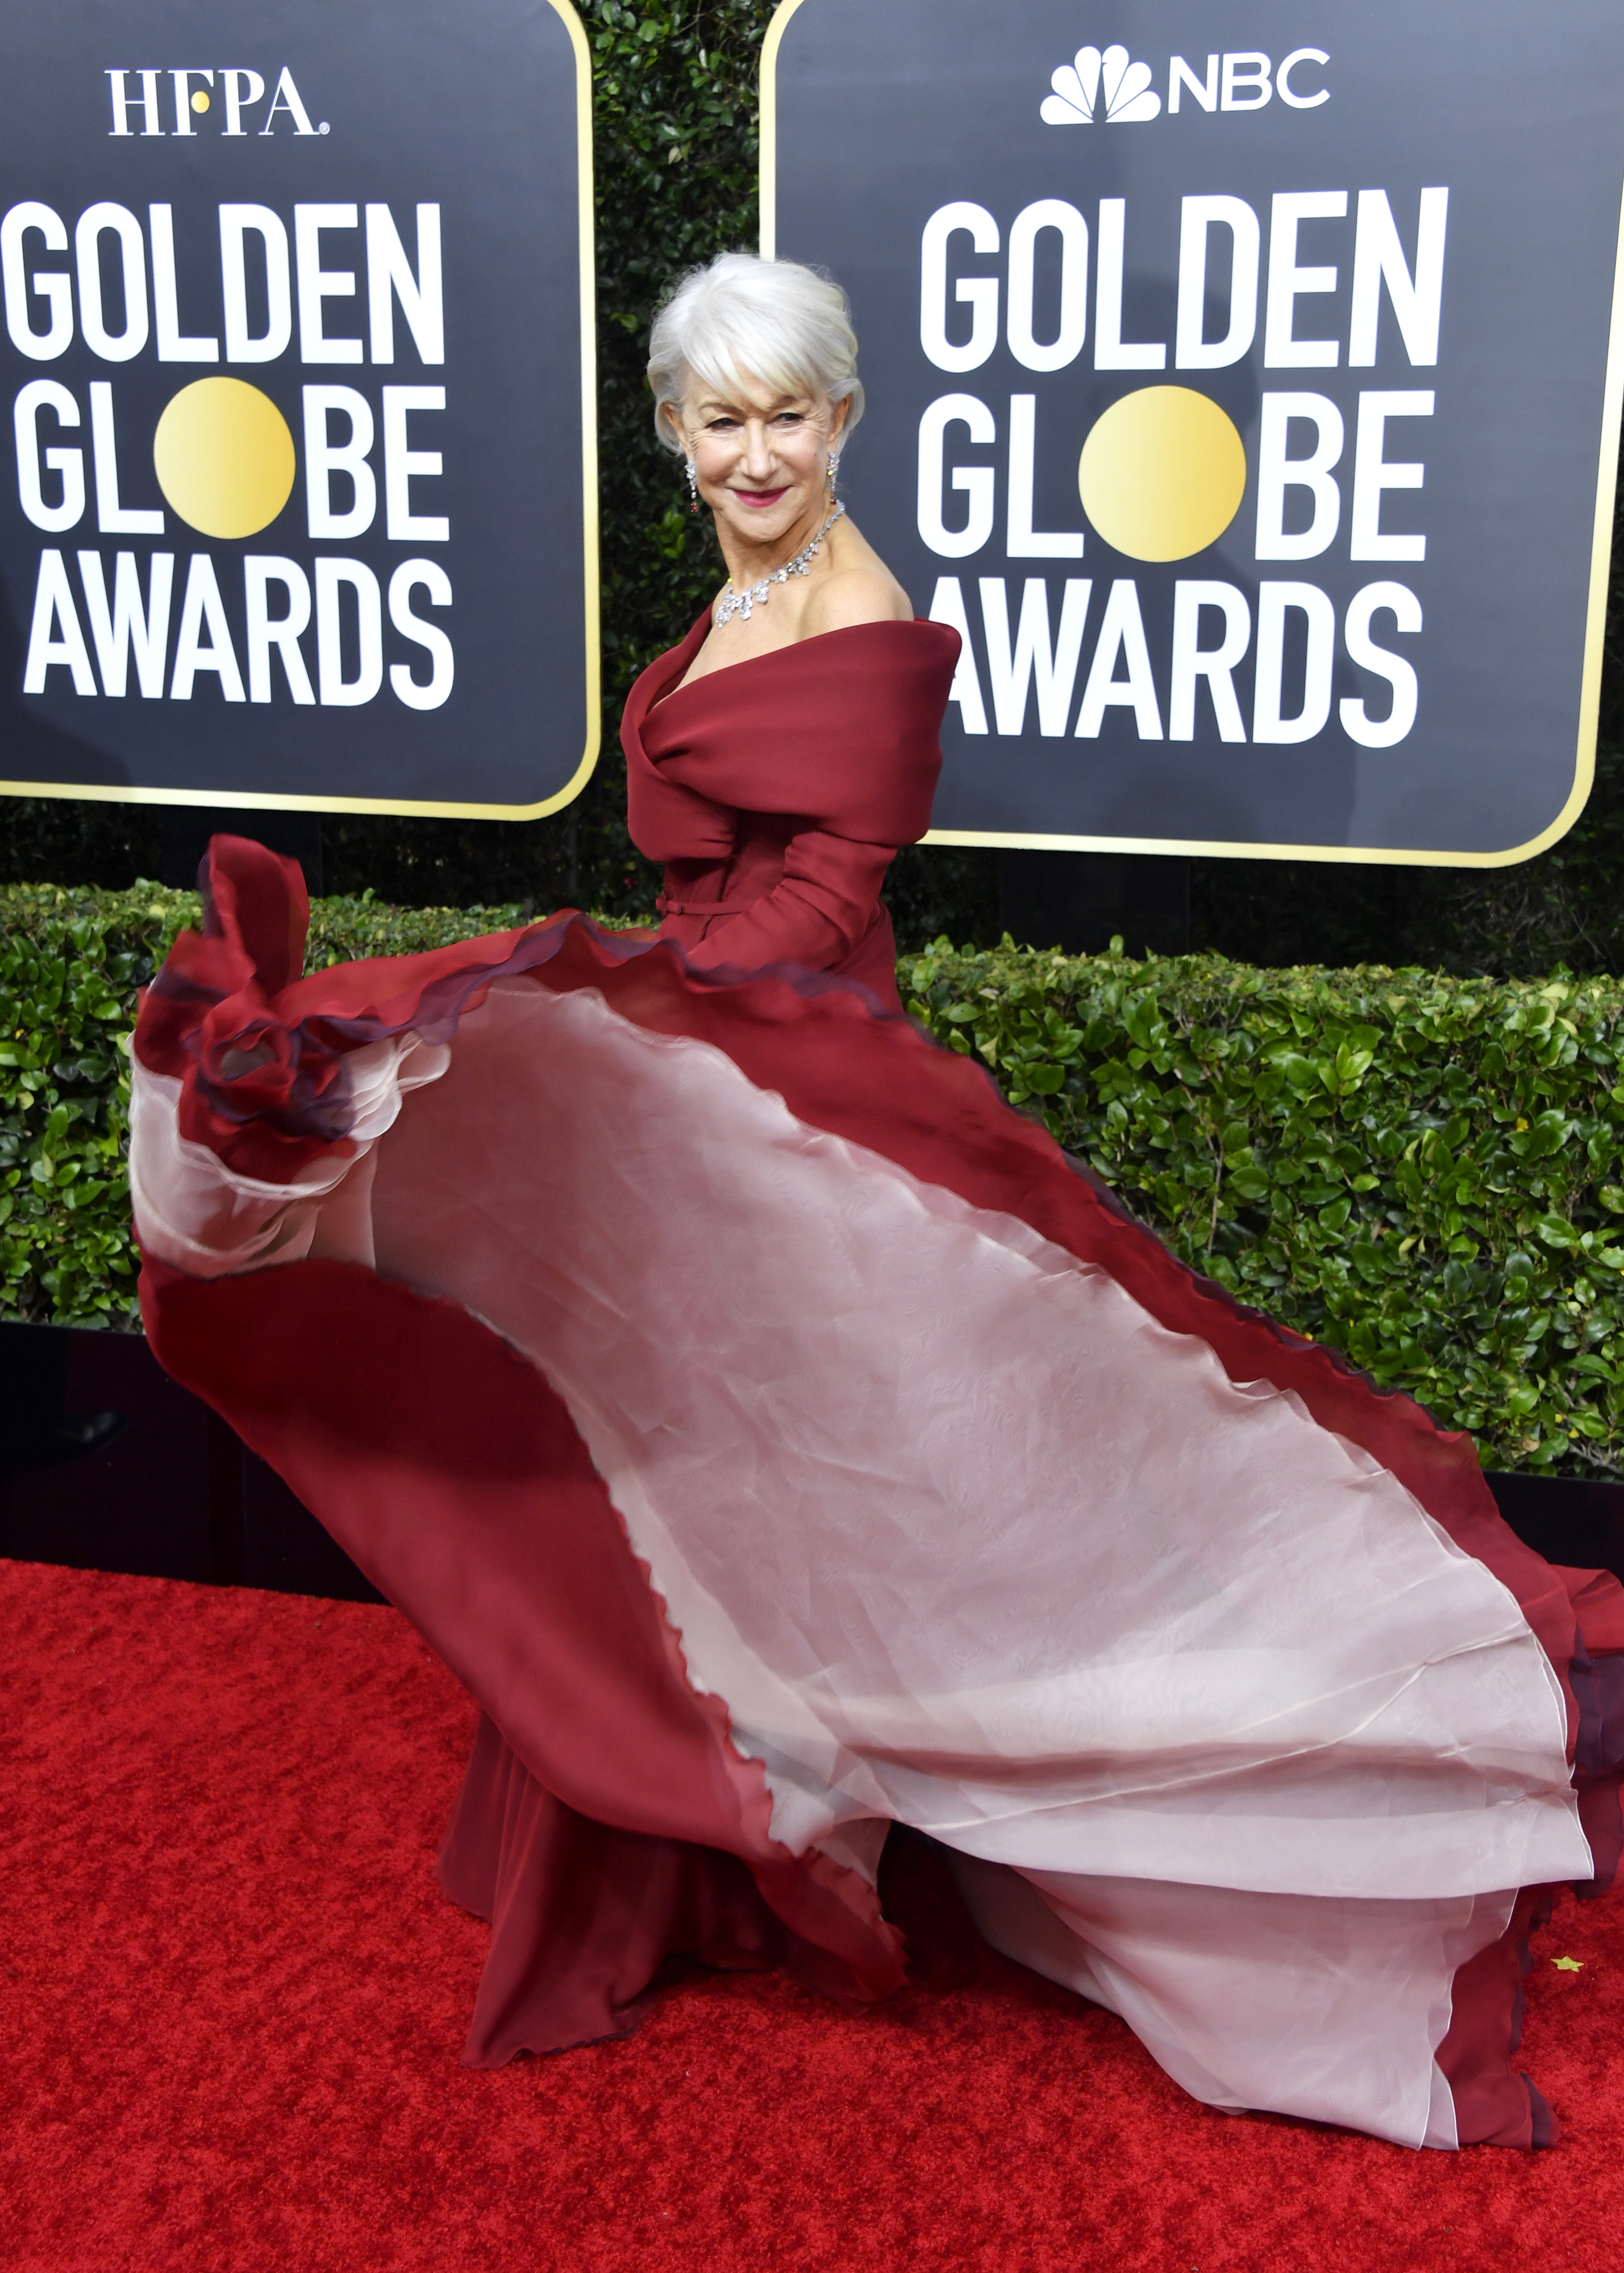 Golden Globes 2020 Best Fashion On The Red Carpet Cnn Style